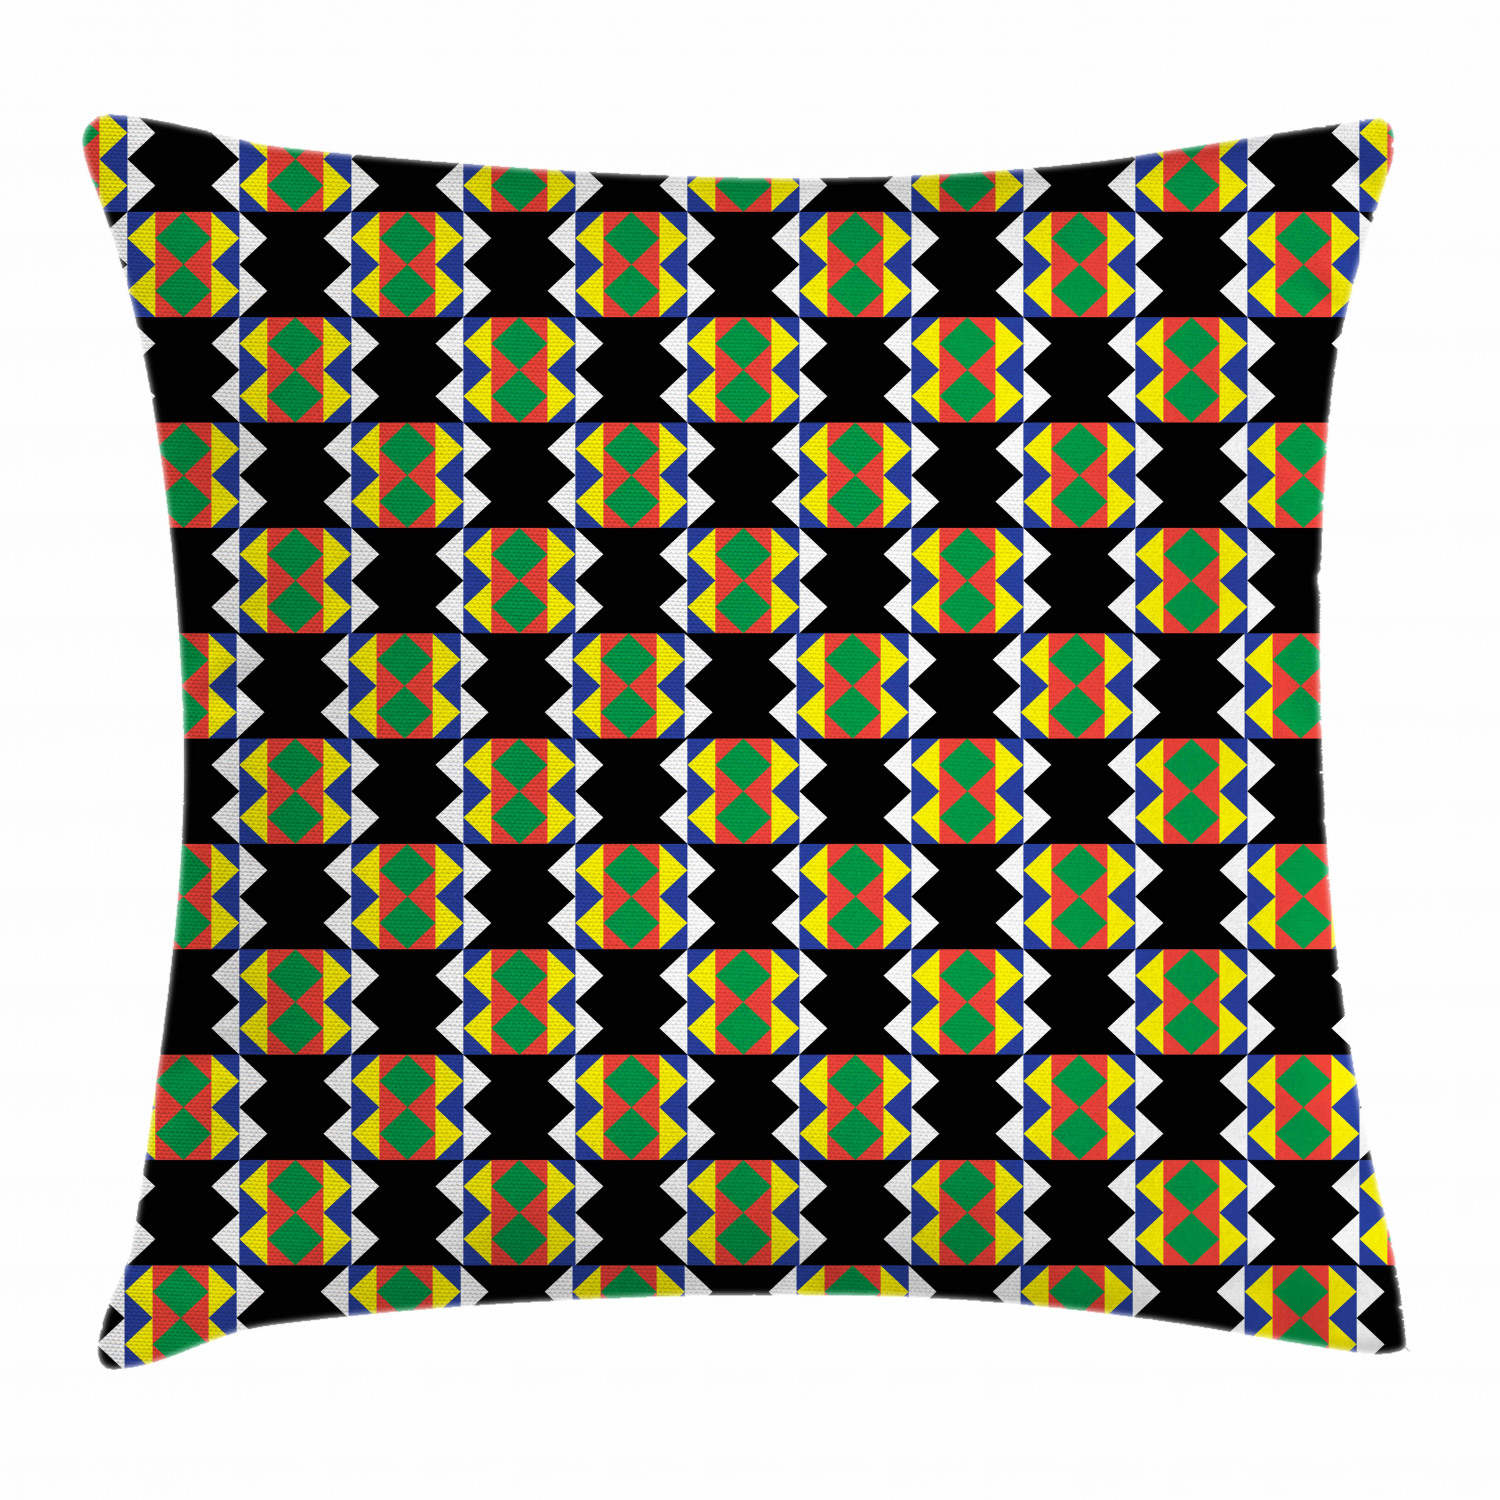 Kente Pattern Throw Pillow Cushion Cover South African Ethnic Zulu Design With Triangle Details Funky And Timeless Decorative Square Accent Pillow Case 20 X 20 Inches Multicolor By Ambesonne Walmart Com Walmart Com